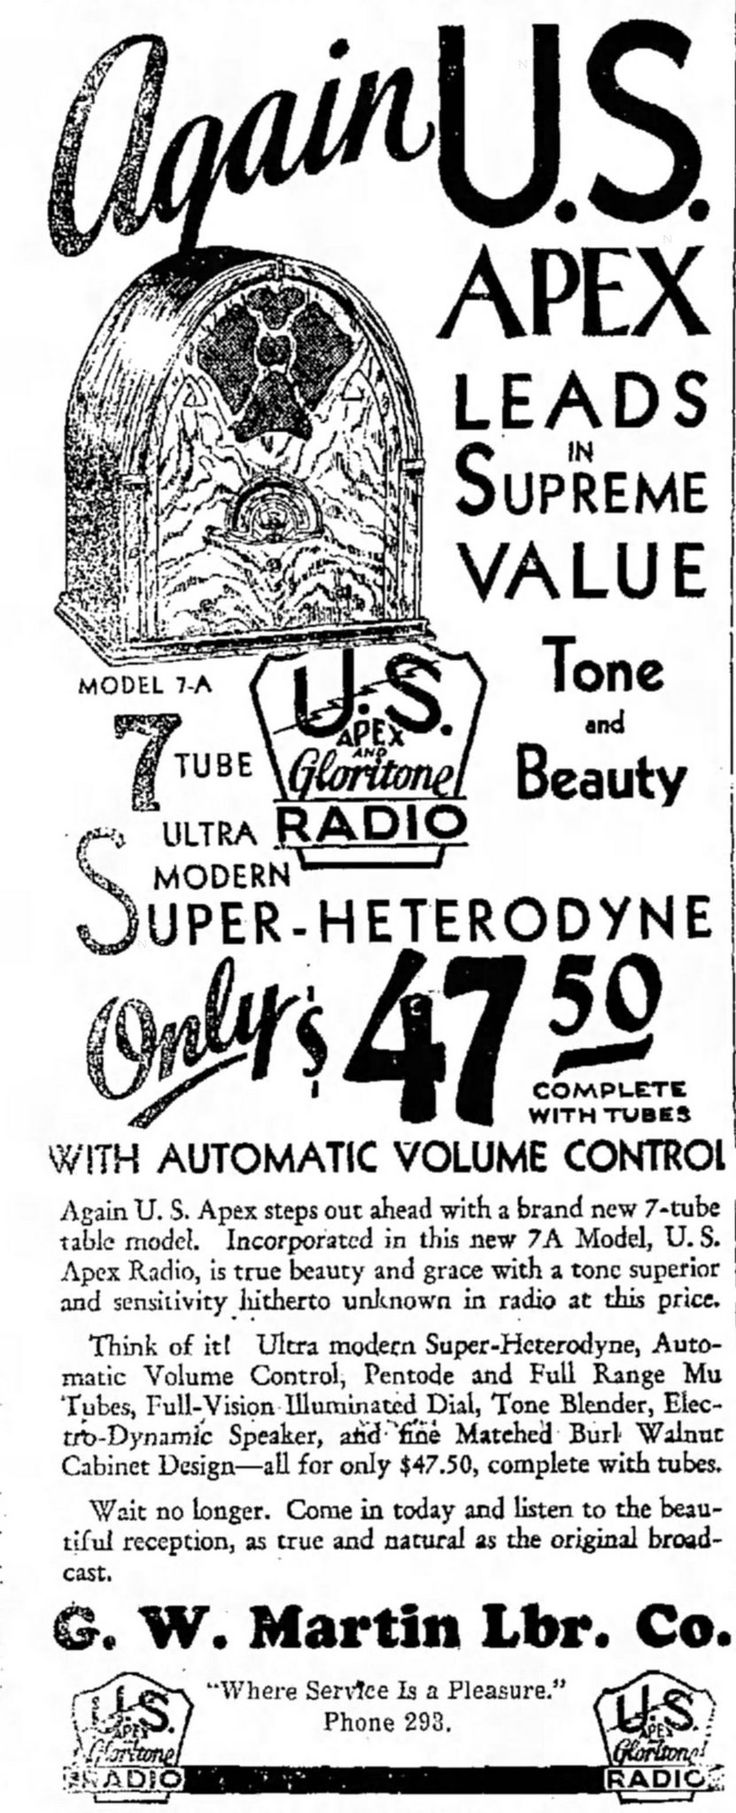 https://flic.kr/p/xxUHZ5   Vintage Advertising For The U.S. Apex Model 7-A Cathedral Radio, The Denton Texas Record Chronicle Newspaper, December 22, 1931